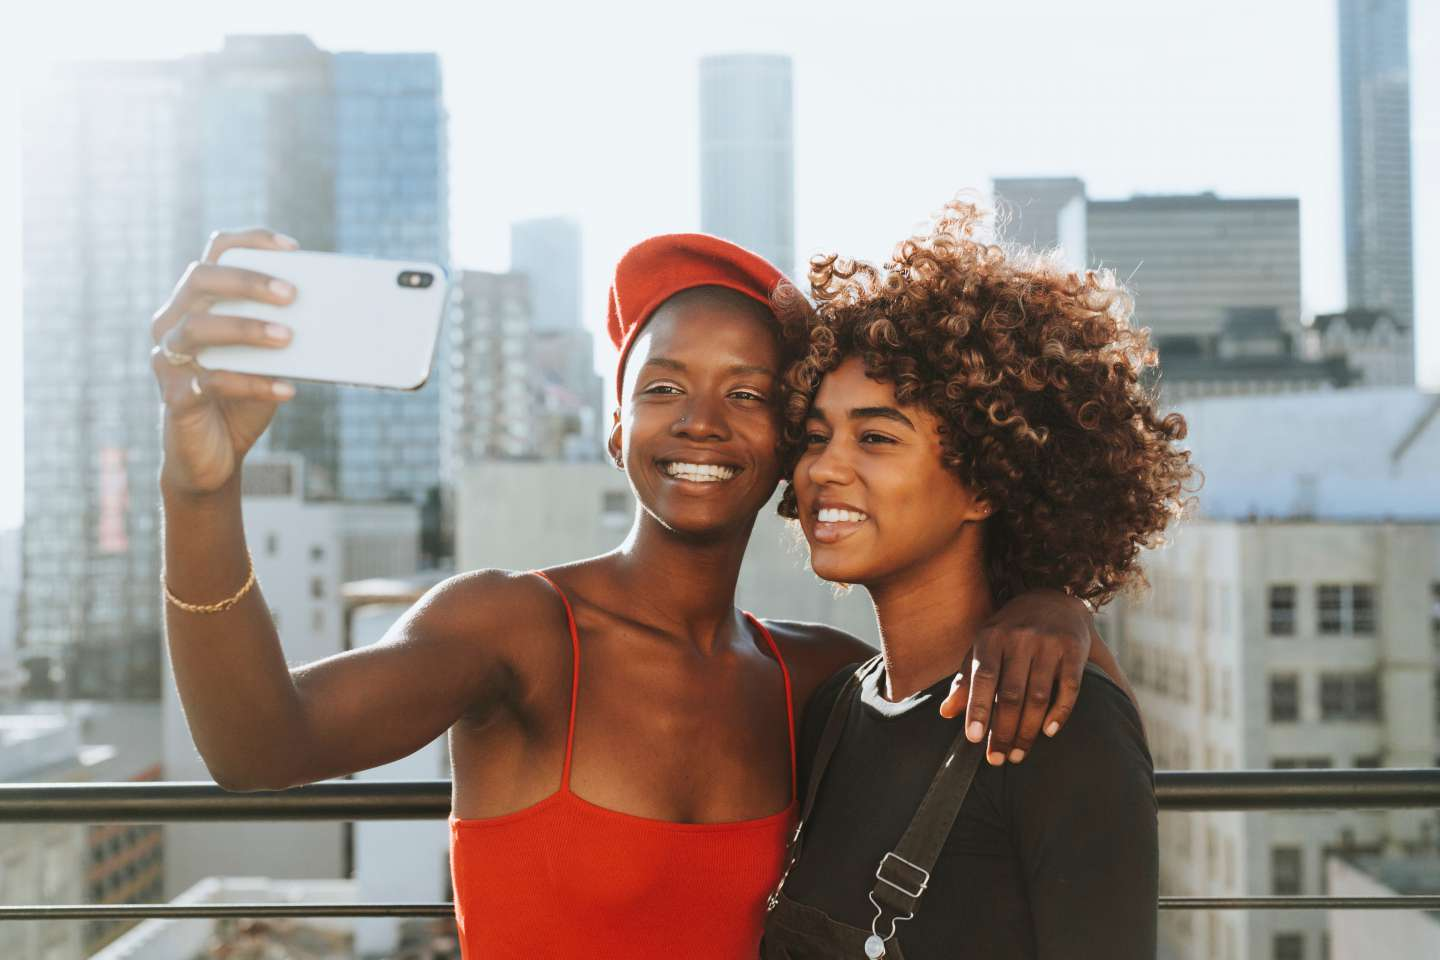 Two urban teenagers taking a selfie with a smart phone